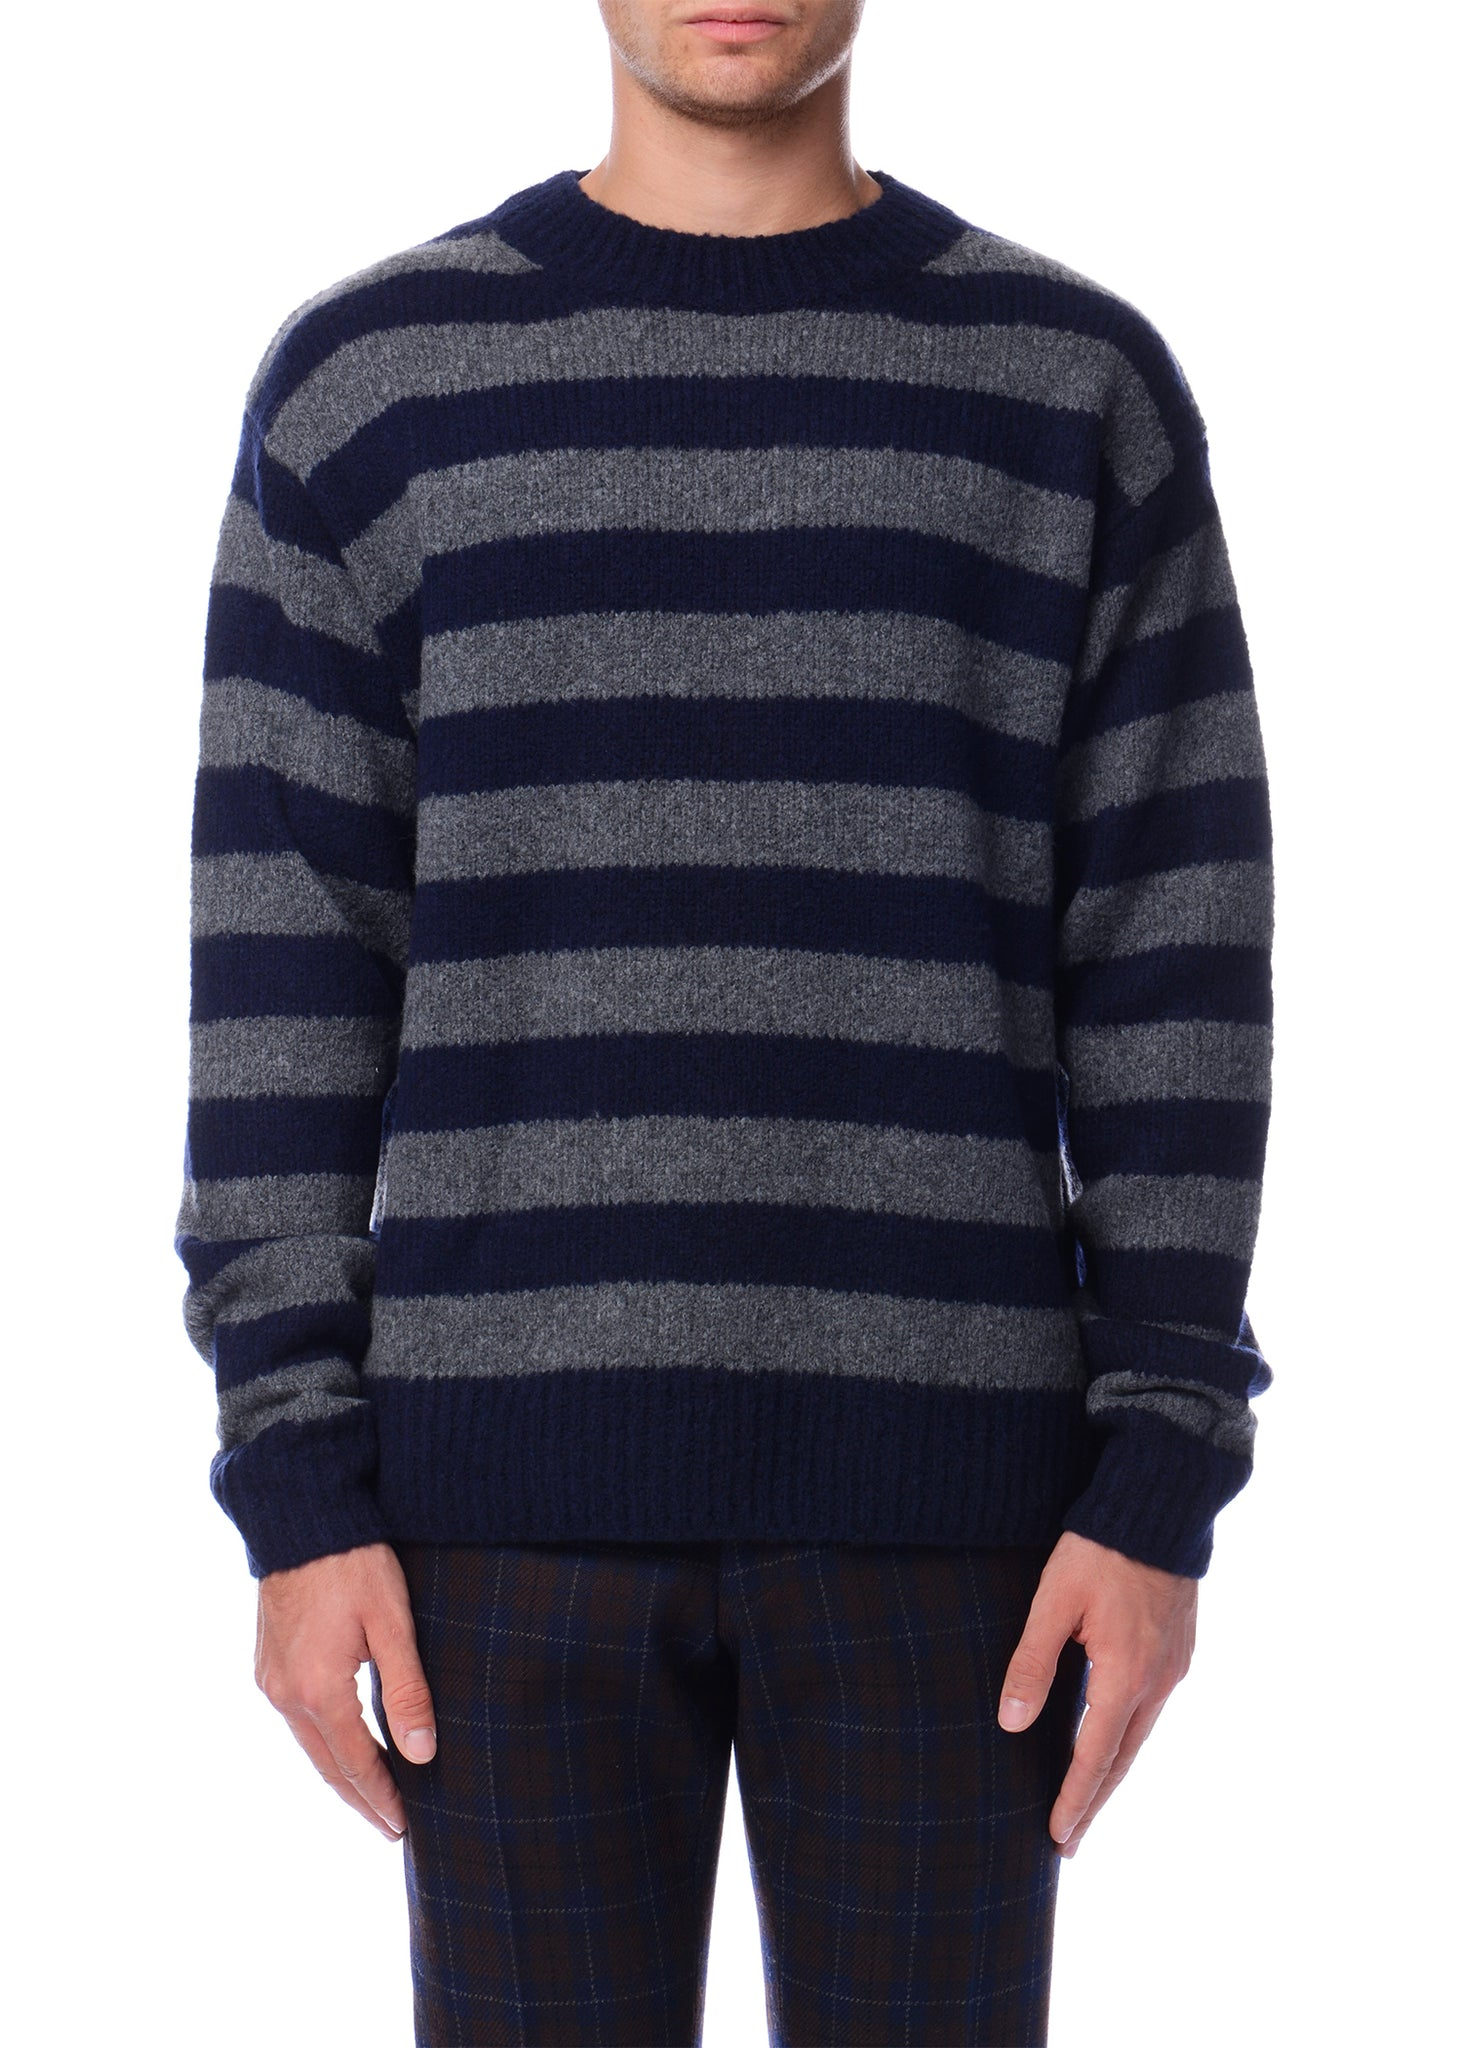 Pull à col rond rayé gris et bleu marine|Grey & Navy Striped Crewneck Sweater